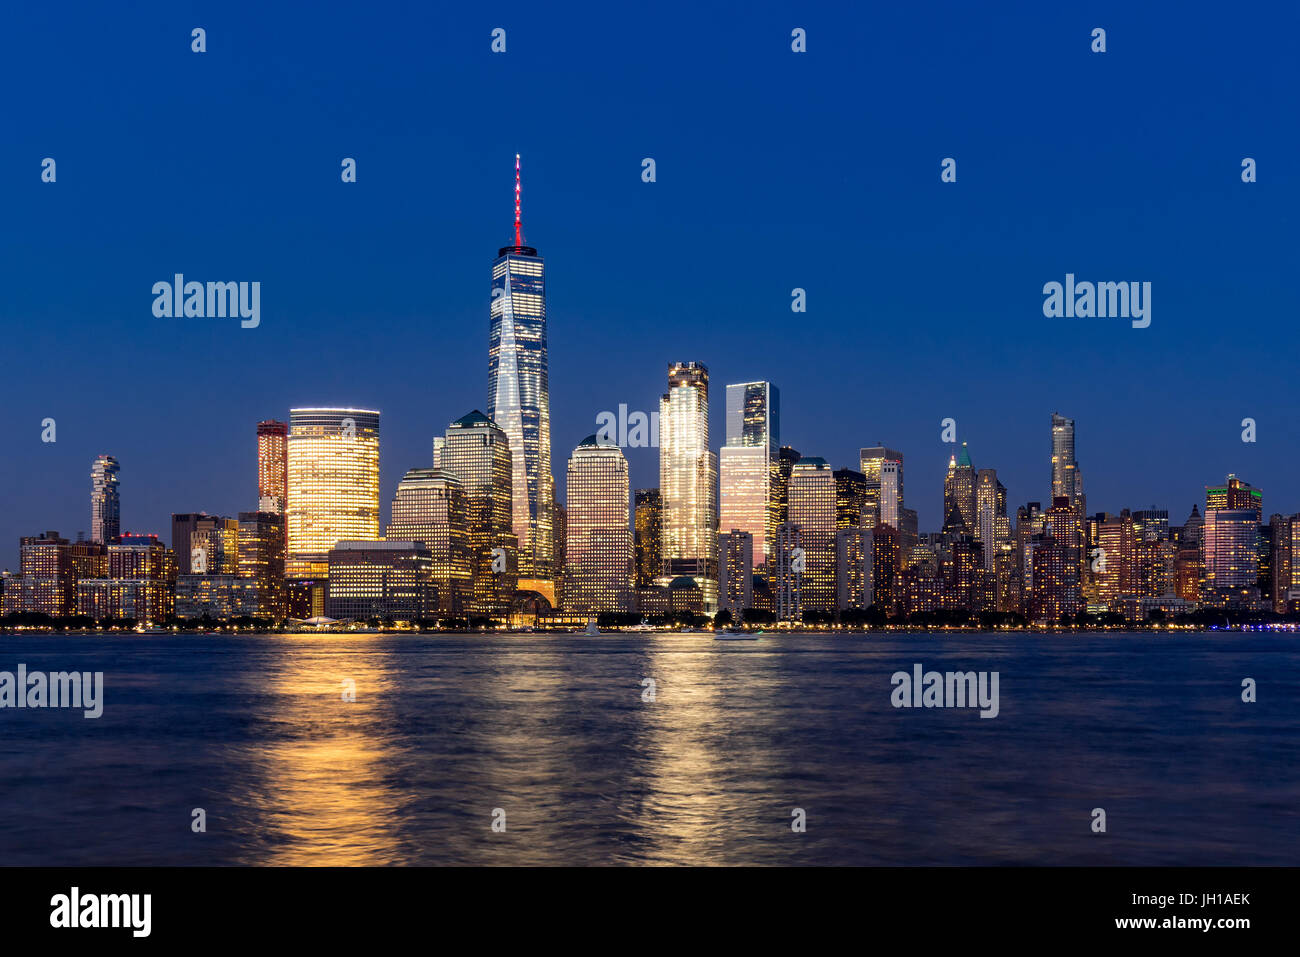 Le quartier financier de la ville de New York Hudson River et de gratte-ciel au crépuscule. Vue panoramique Photo Stock